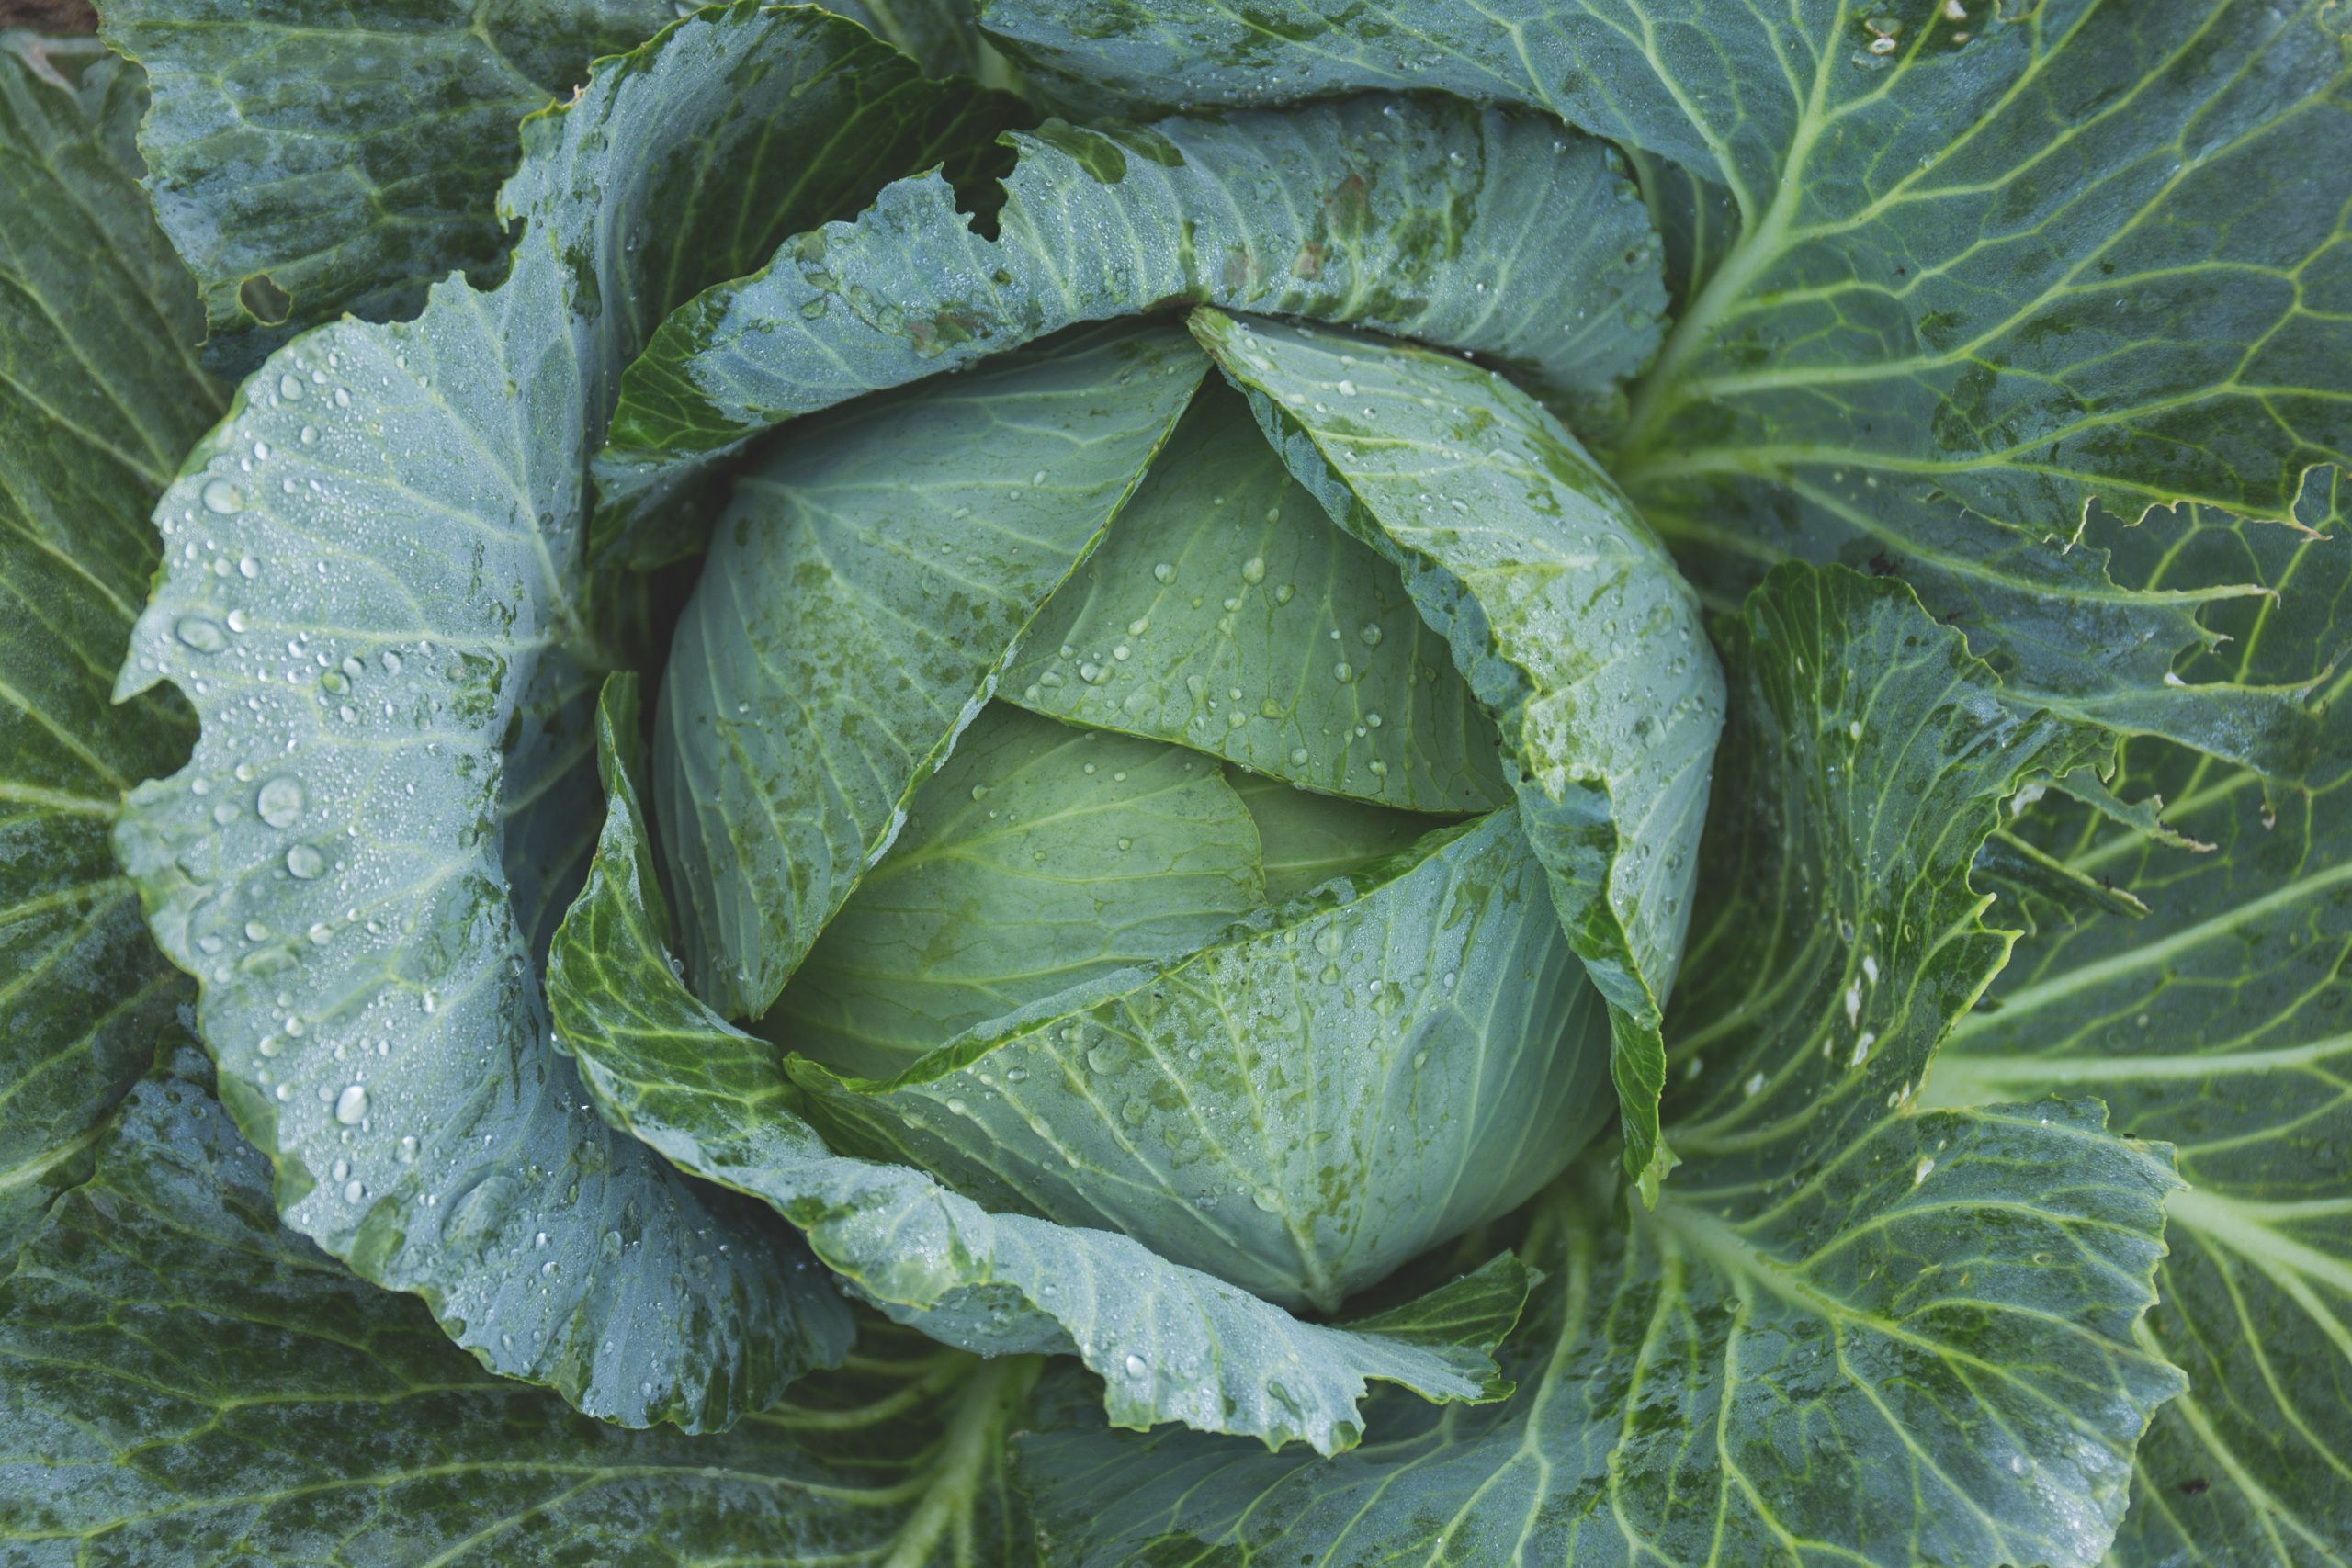 how much dna do humans share with cabbage